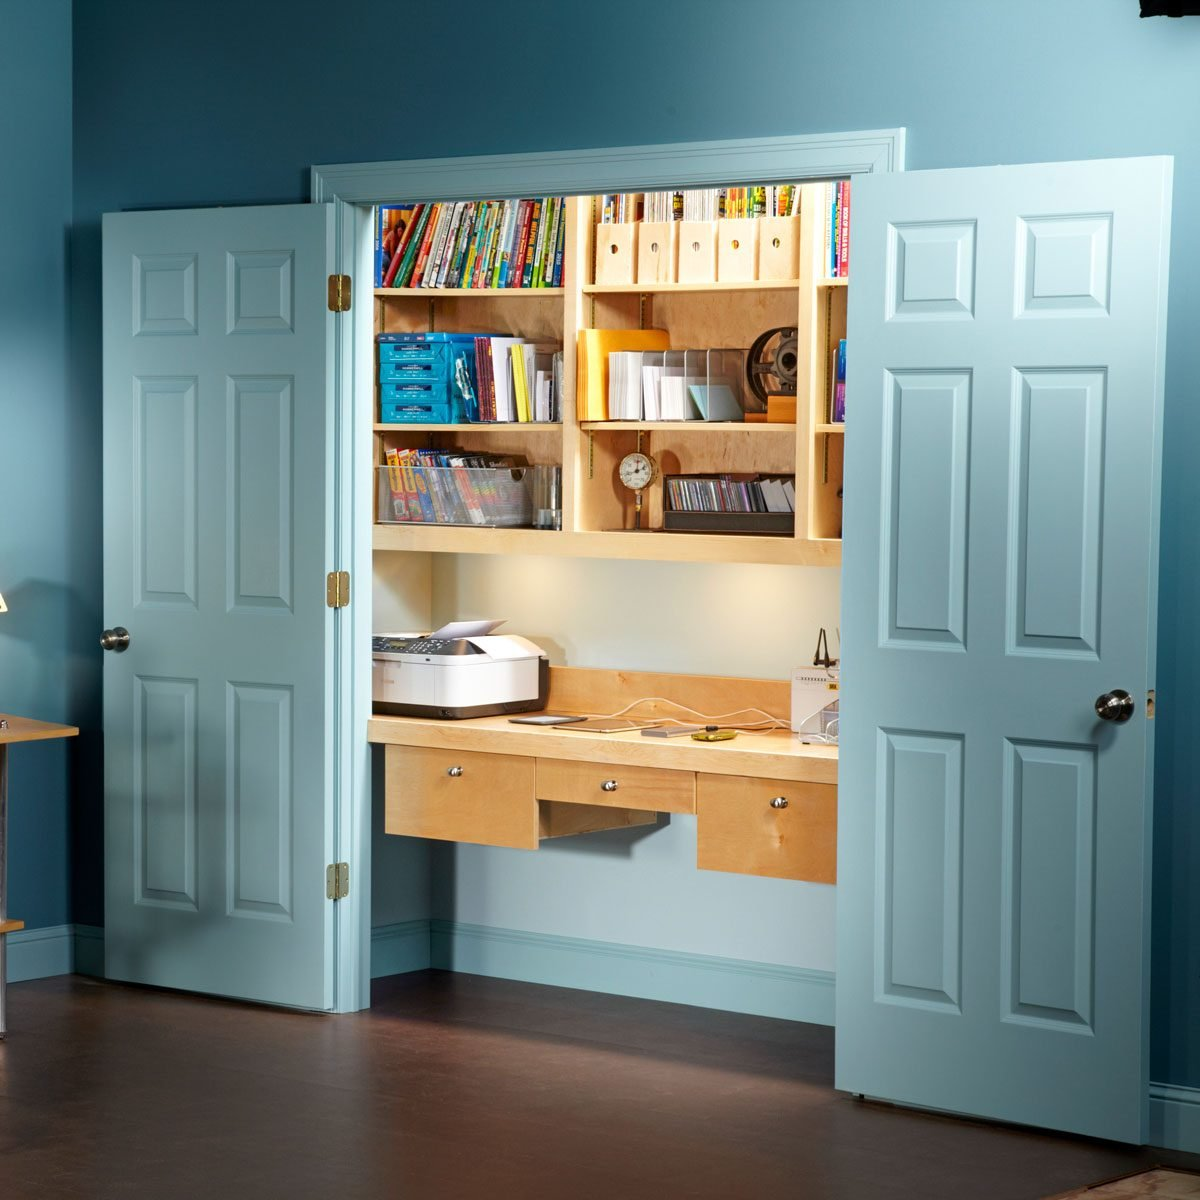 How to Turn a Closet Into an Office